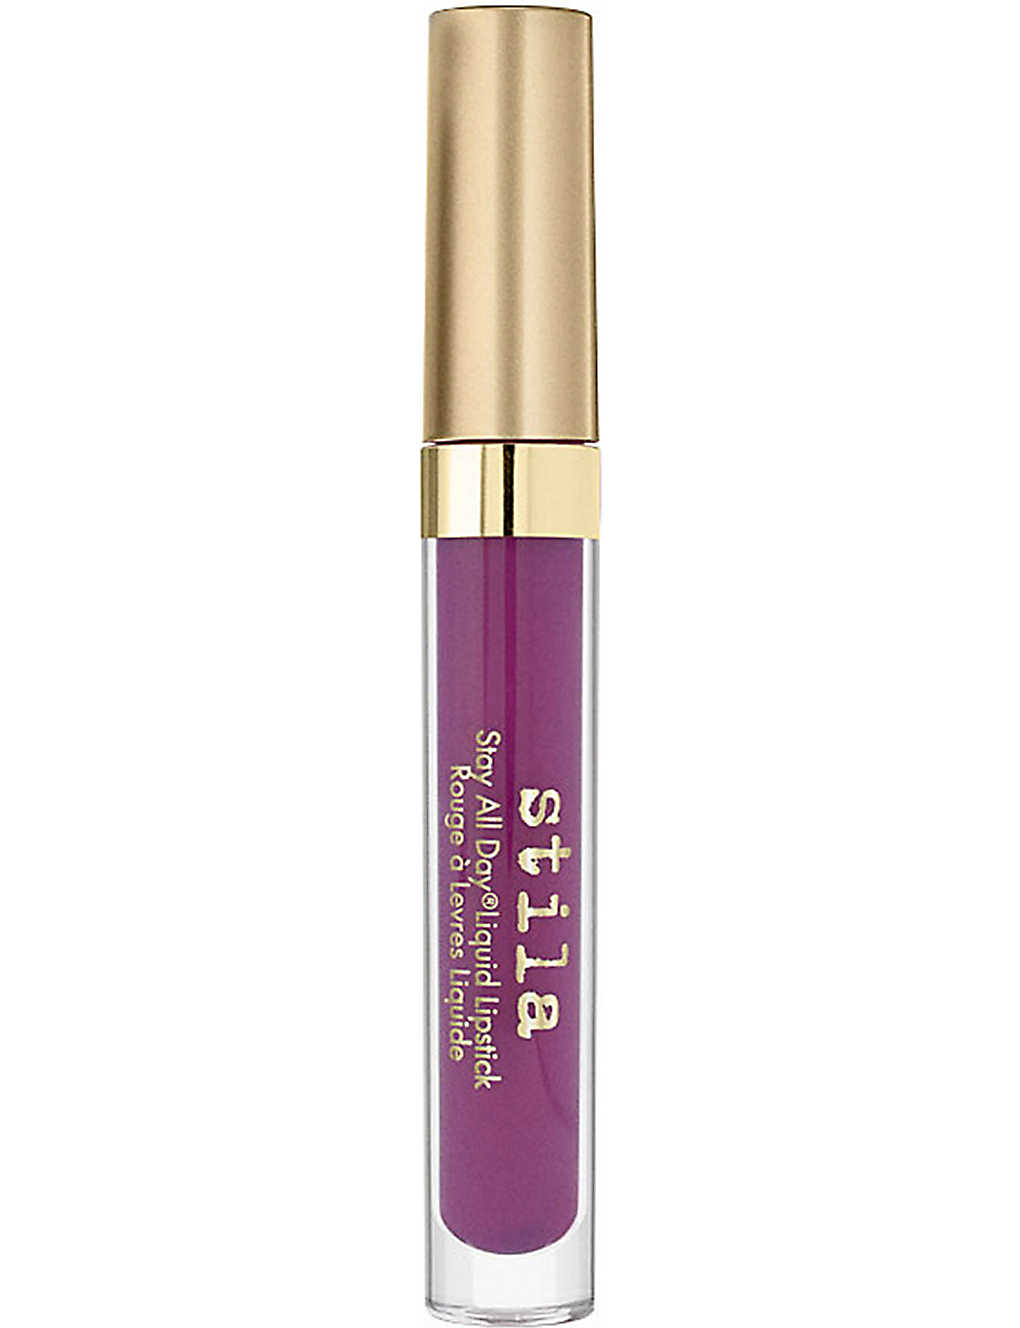 STILA: Stay all Day liquid lipstick